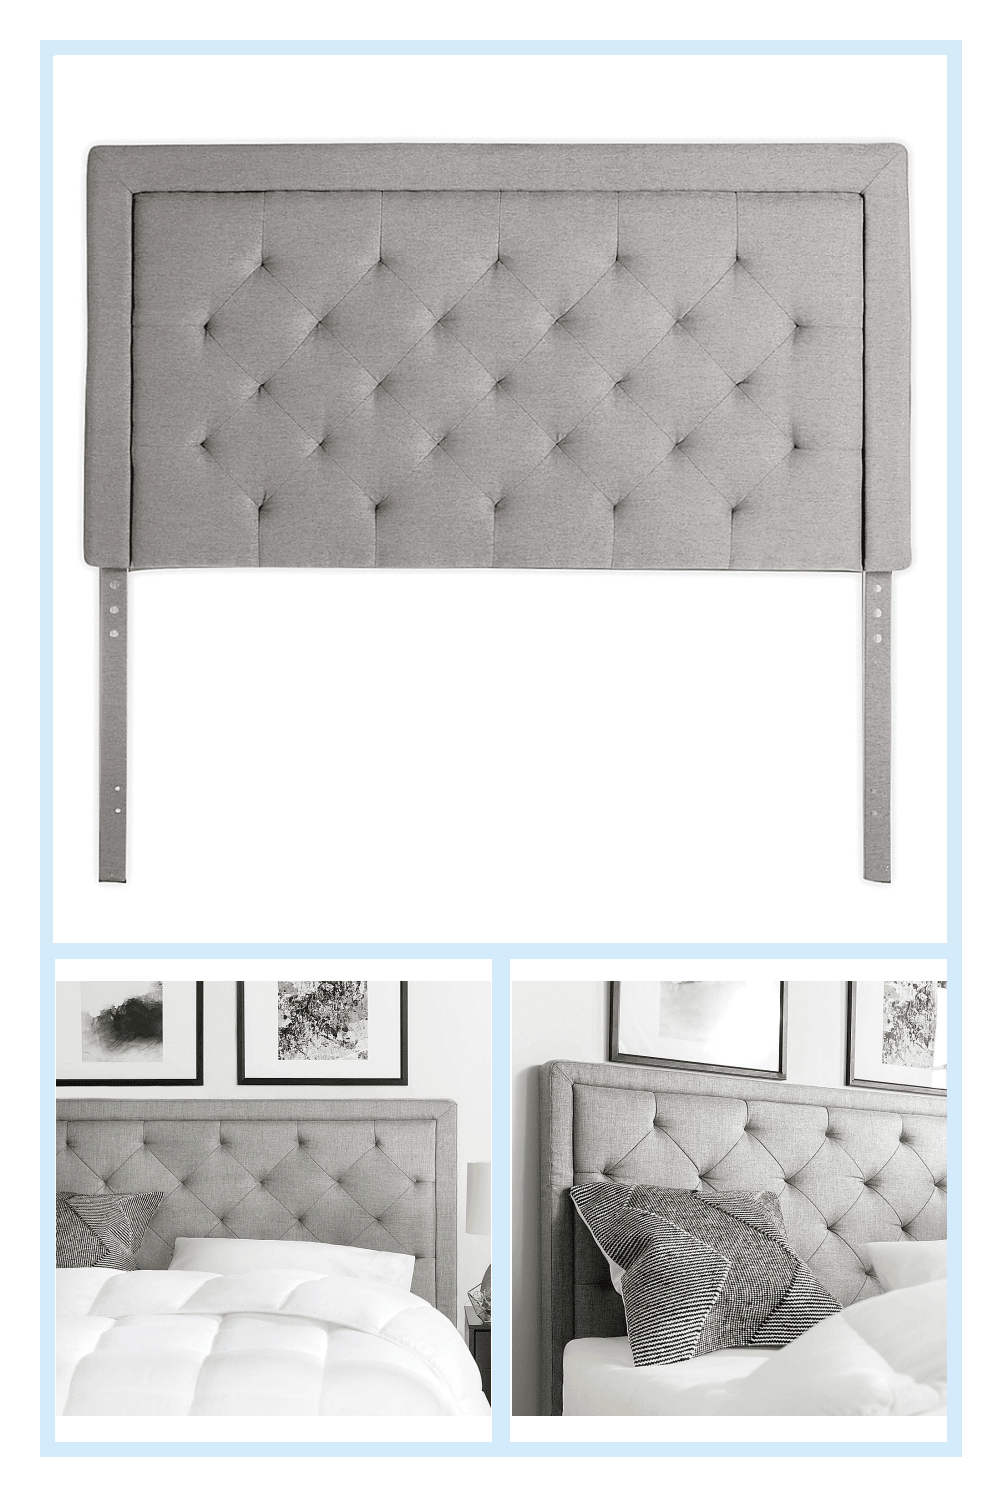 cheap headboards near me on dream collection by lucid diamond tufted upholstered headboard bed bath beyond gray upholstered headboard tufted upholstered headboard upholstered headboard diamond tufted upholstered headboard